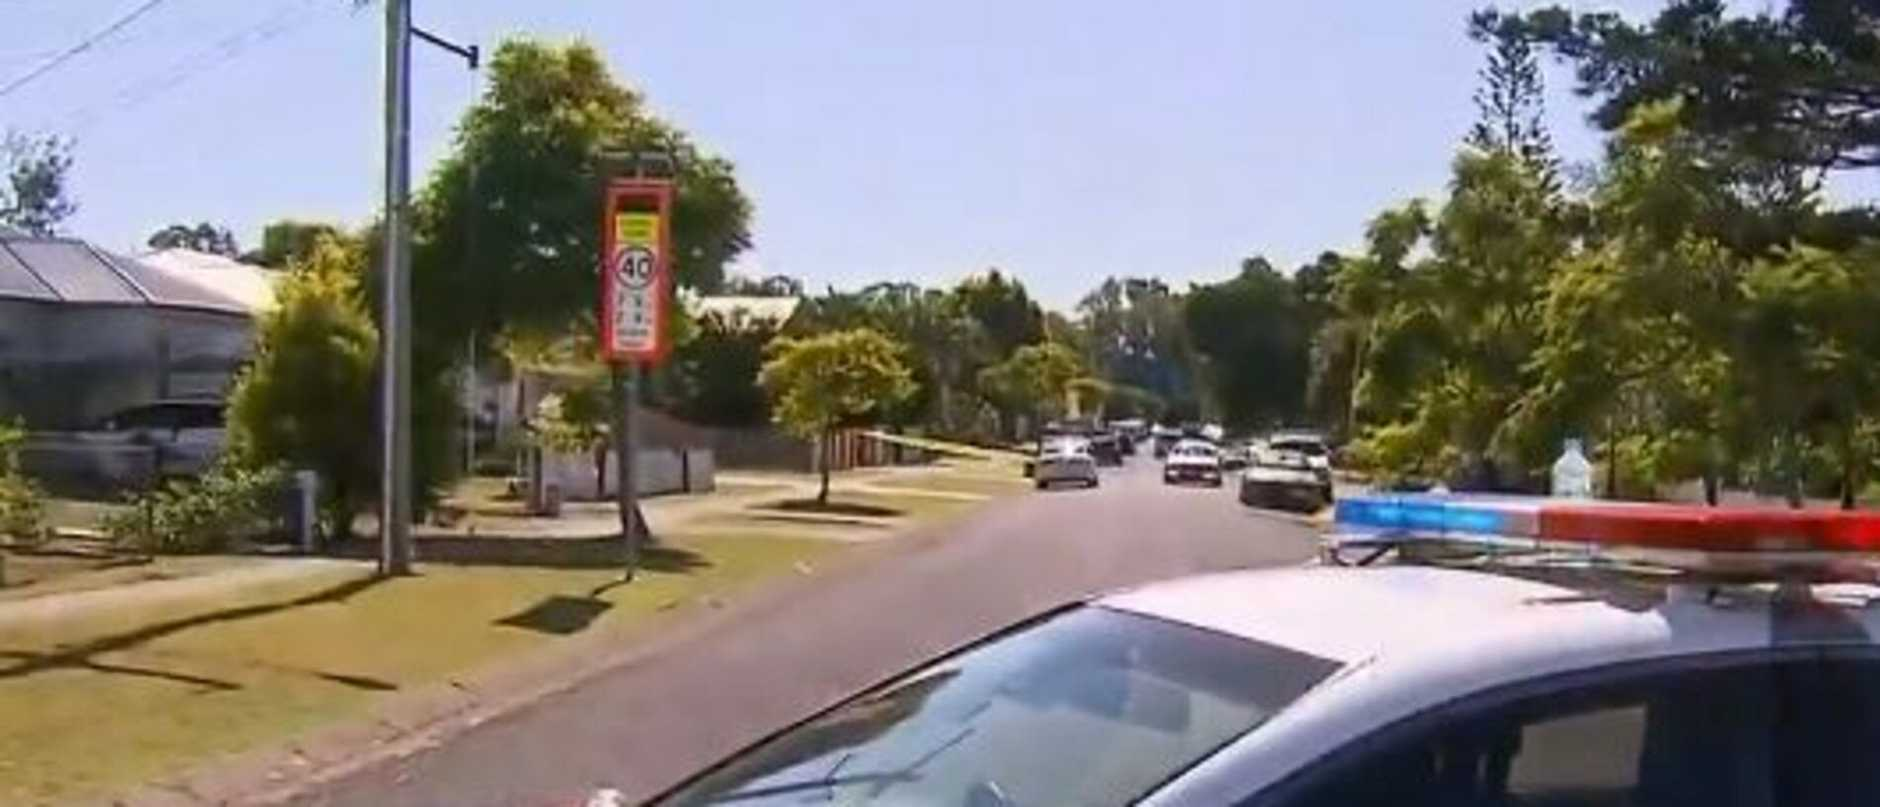 The scene at Cannon Hill where a child has been found dead. Photo: 9 News